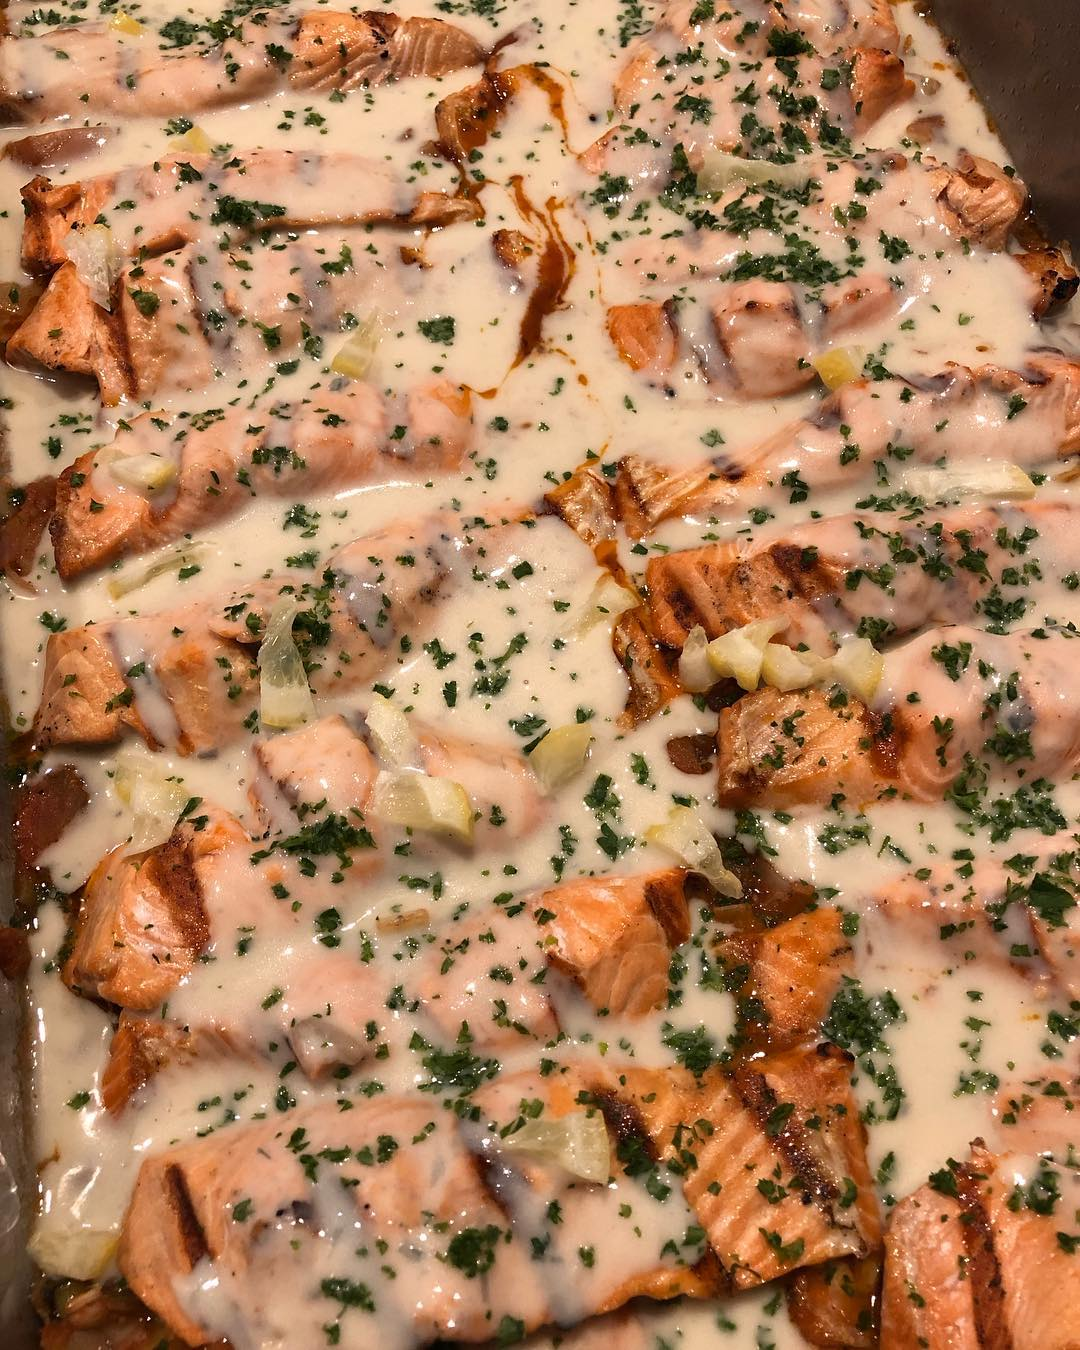 Salmon in Sauce -- Delicious!